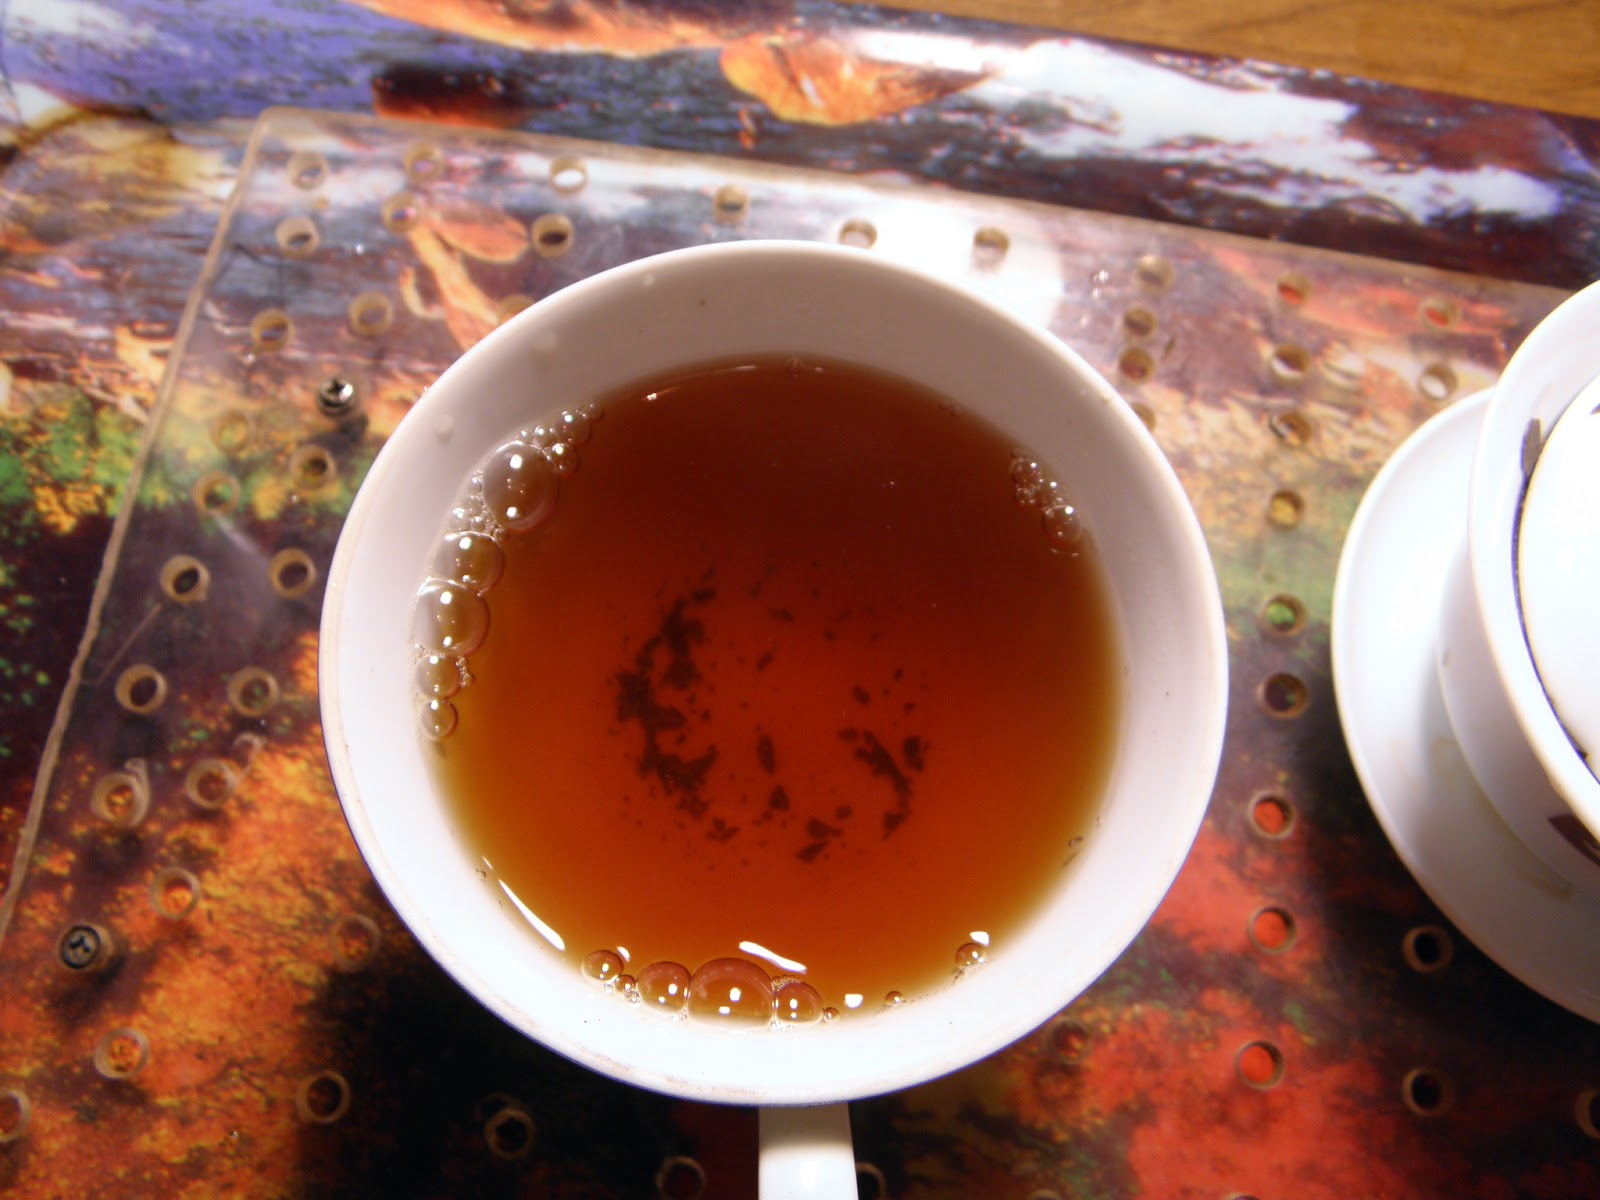 Bojenmi herbal tea - Leaves Consisting Of Large Whole Leaves And Lots Of Broken Chips Of Leaves Also That Look Like They Have Been Roasted